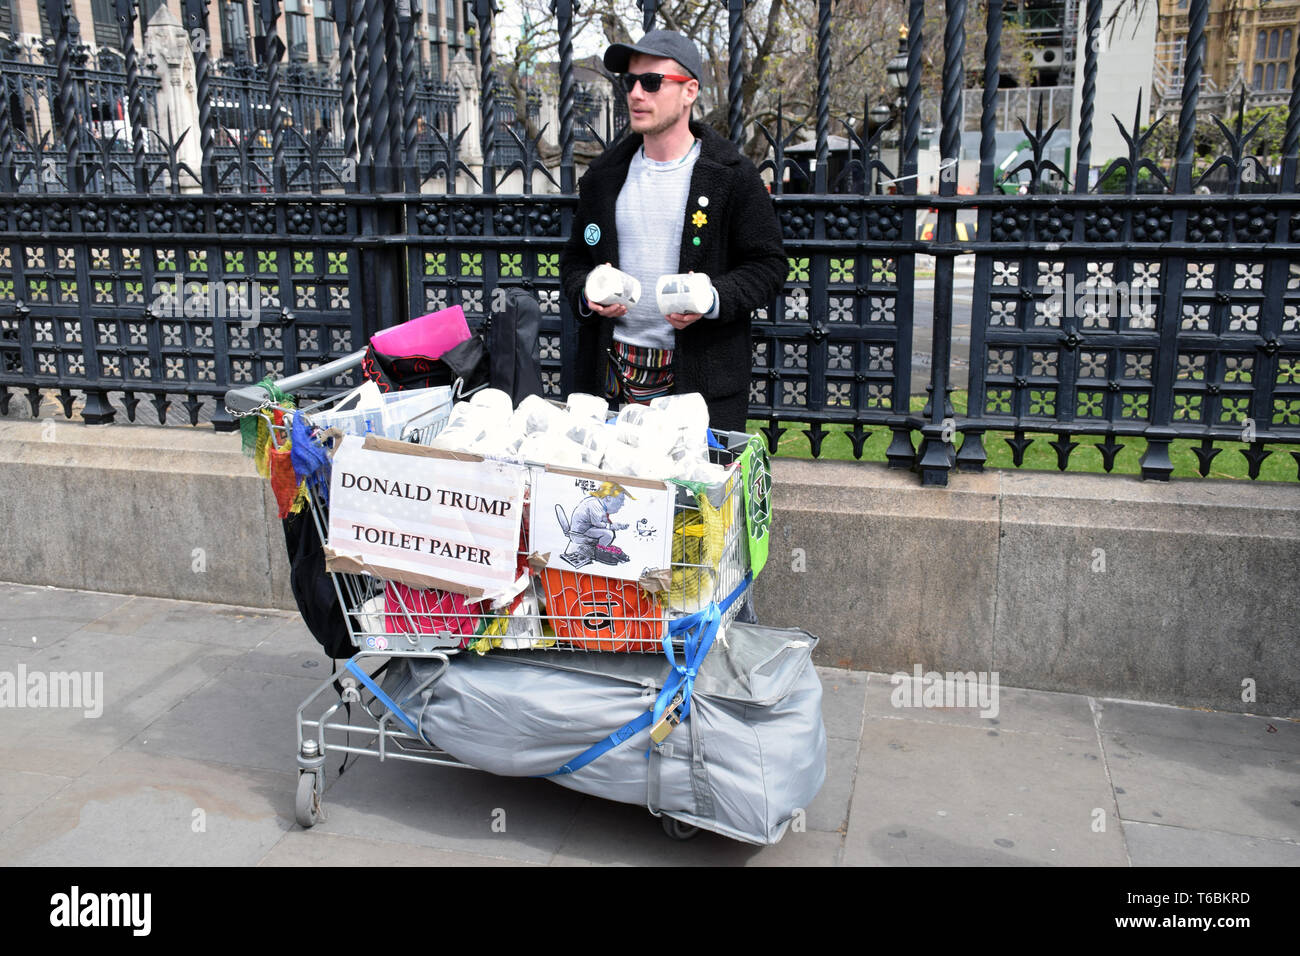 Anti Donald Trump protest outside House of Commons, London UK 29 April 2019 - Stock Image